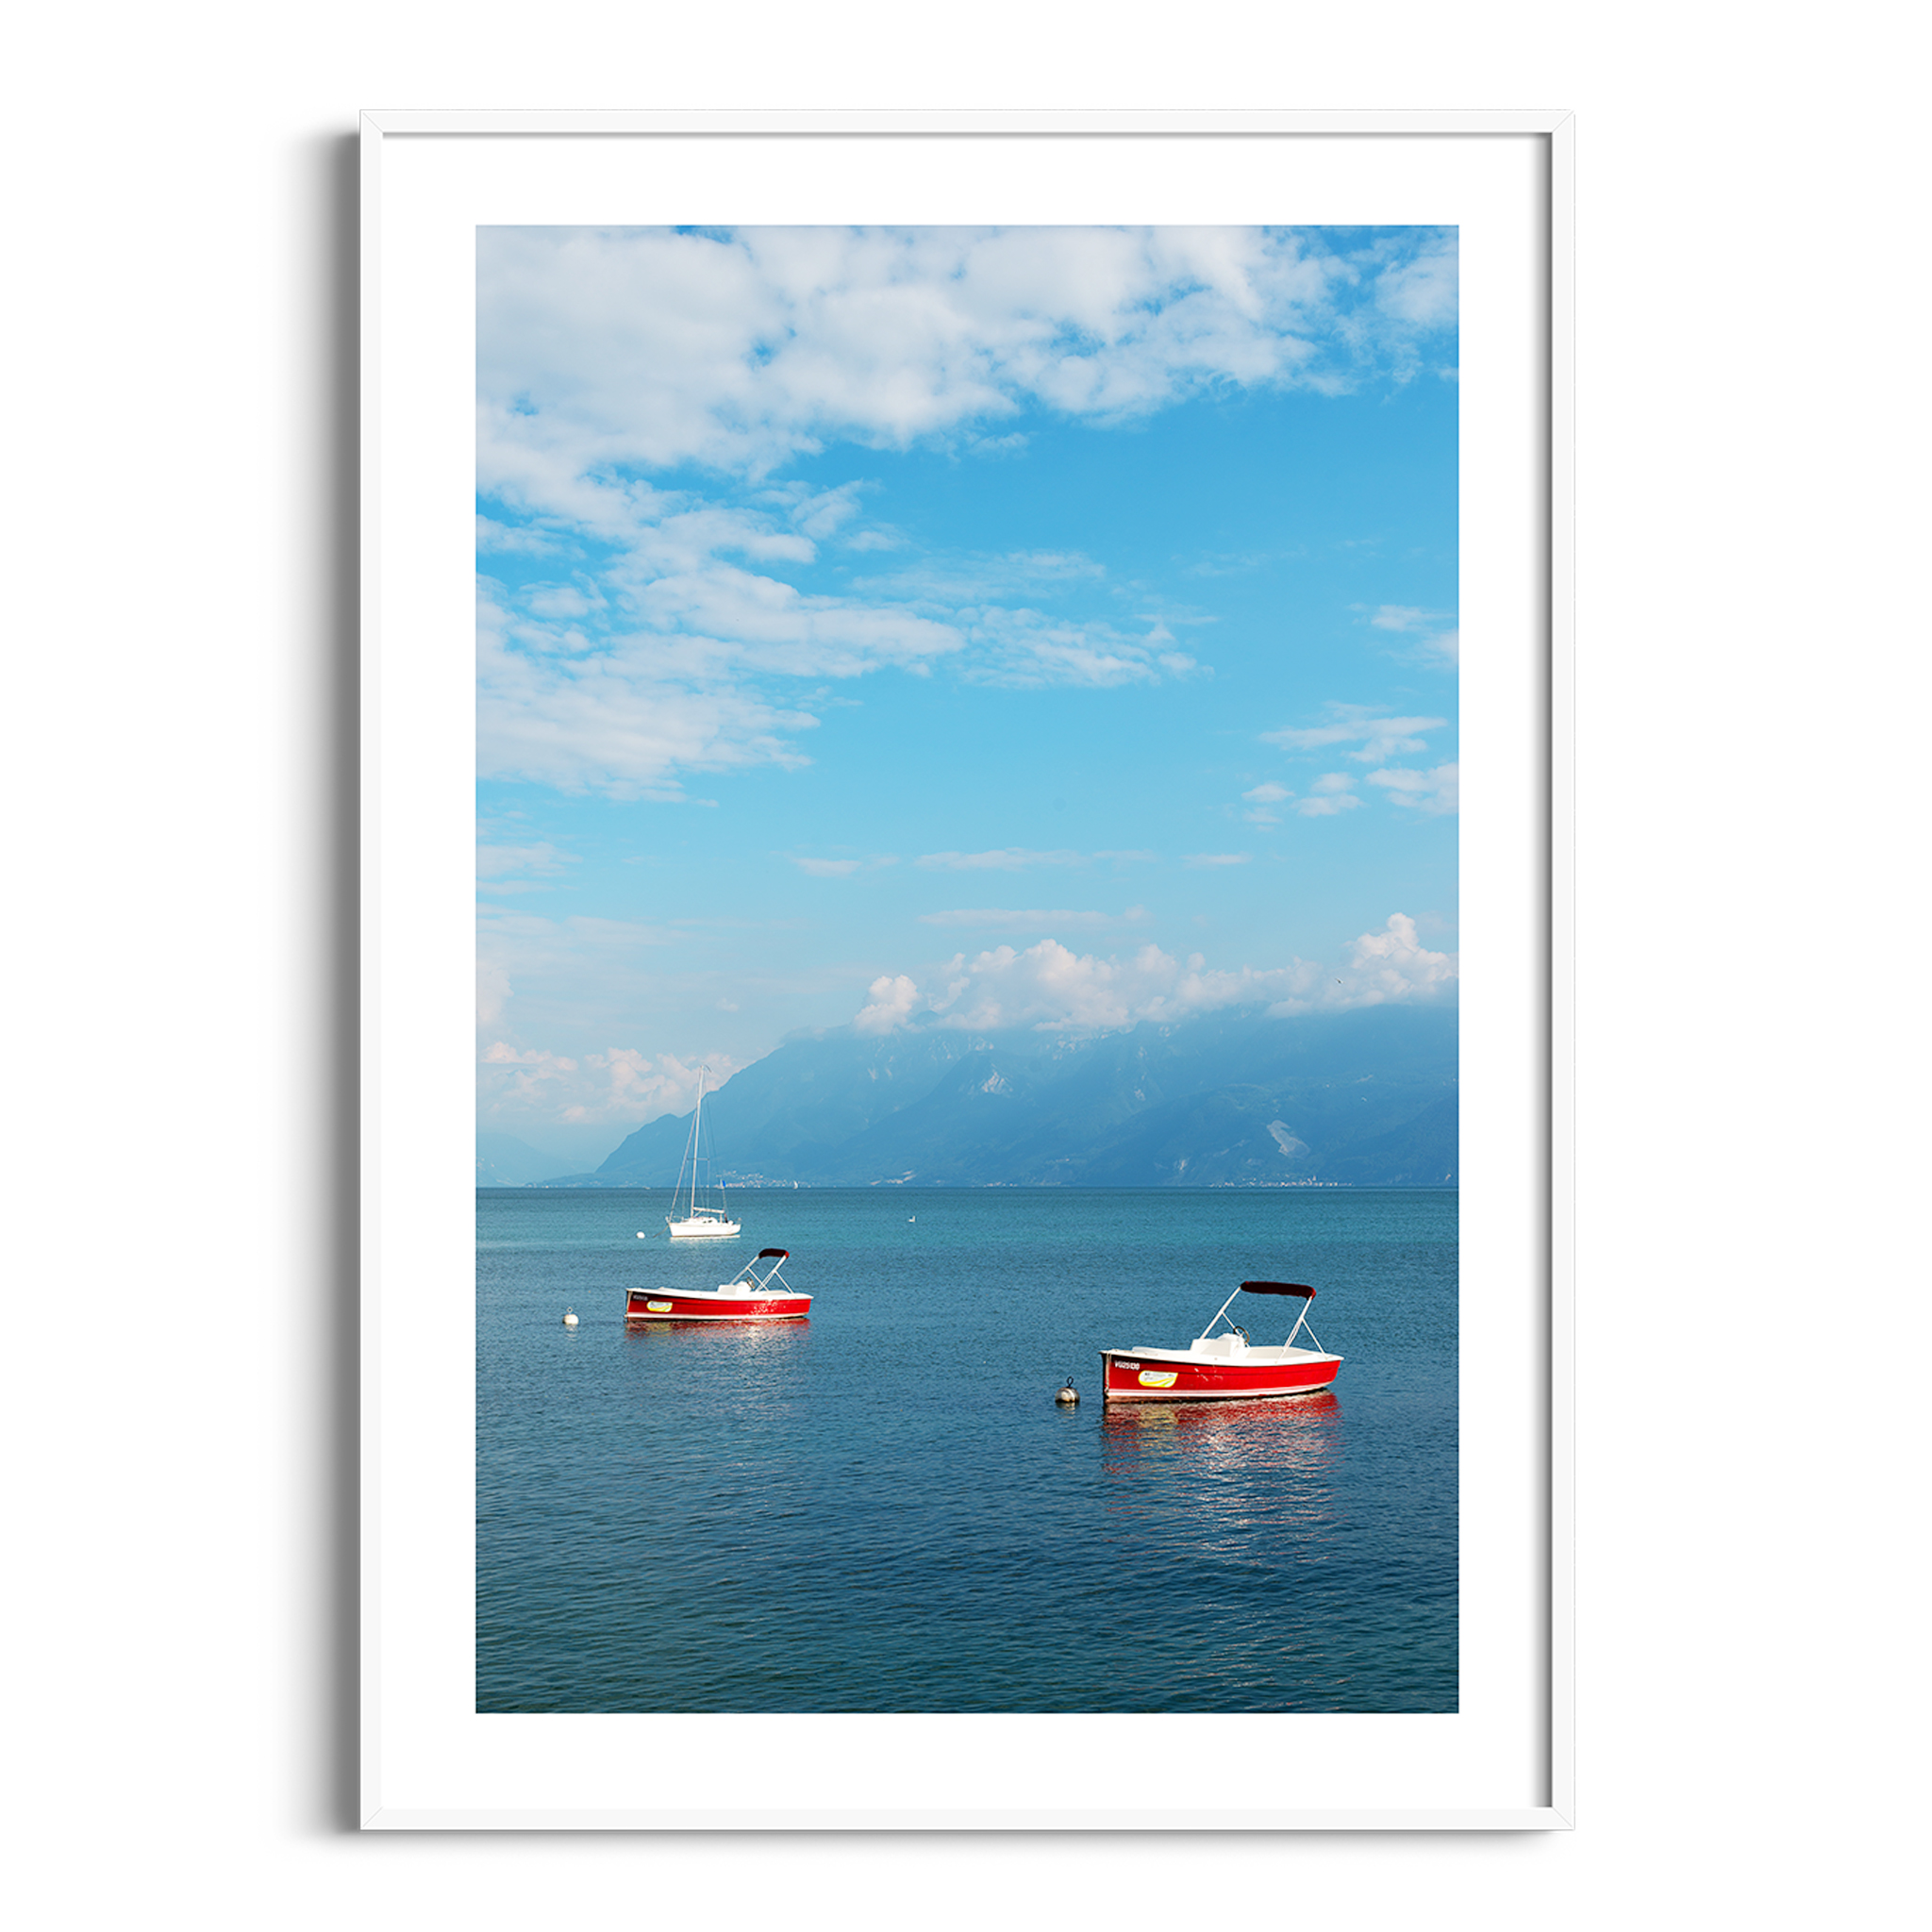 Boats on the Lake Leman - color print with border in white frame